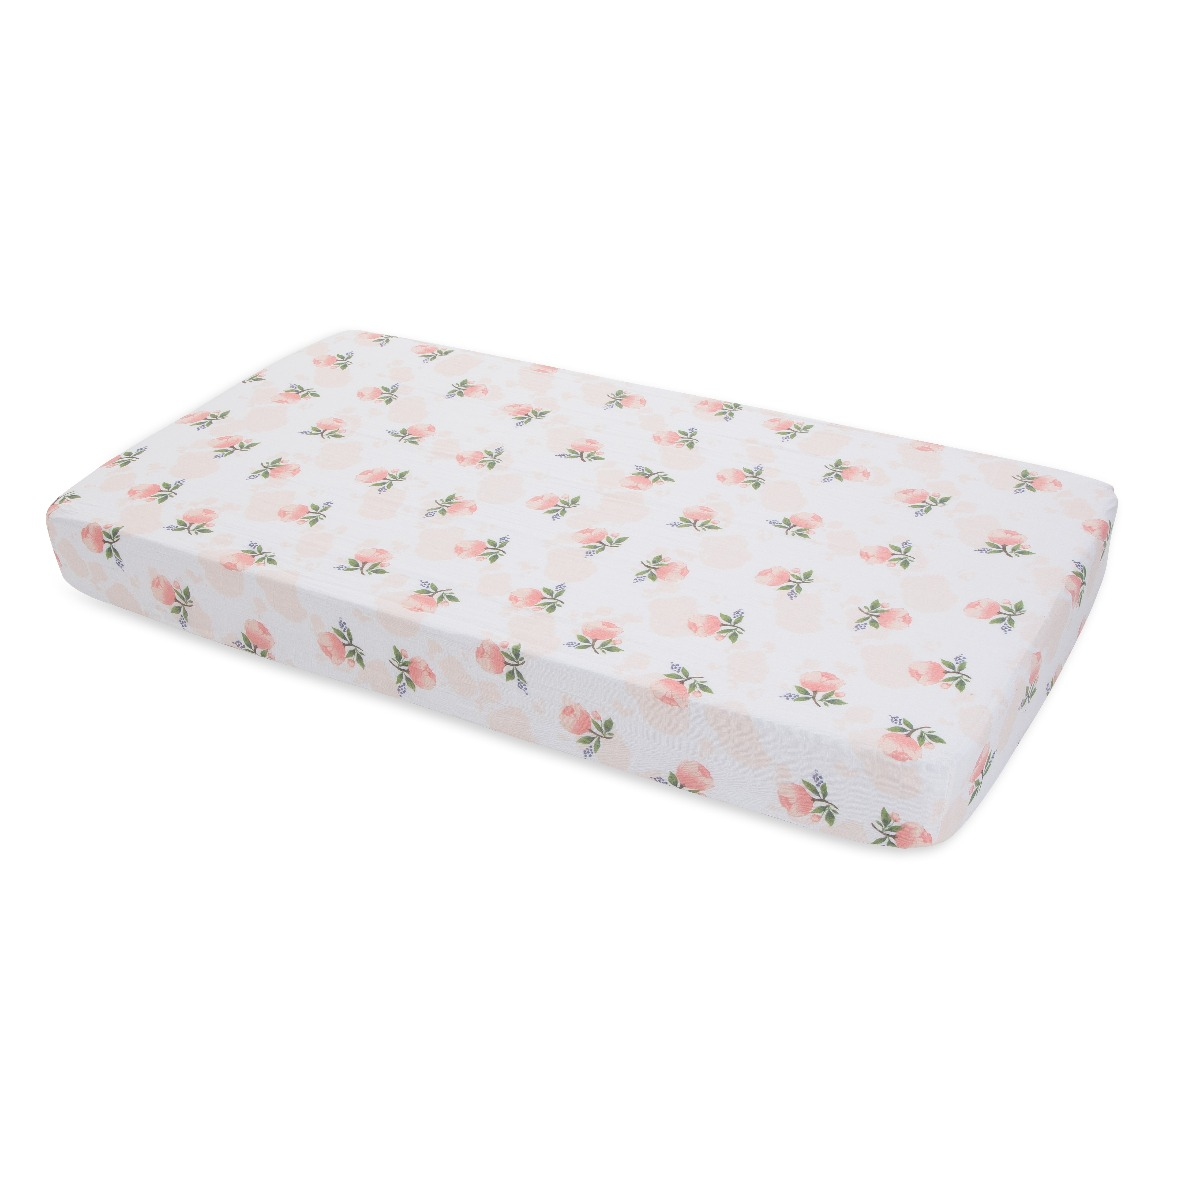 Little Unicorn Cotton Muslin Crib Sheet Water Color Rose